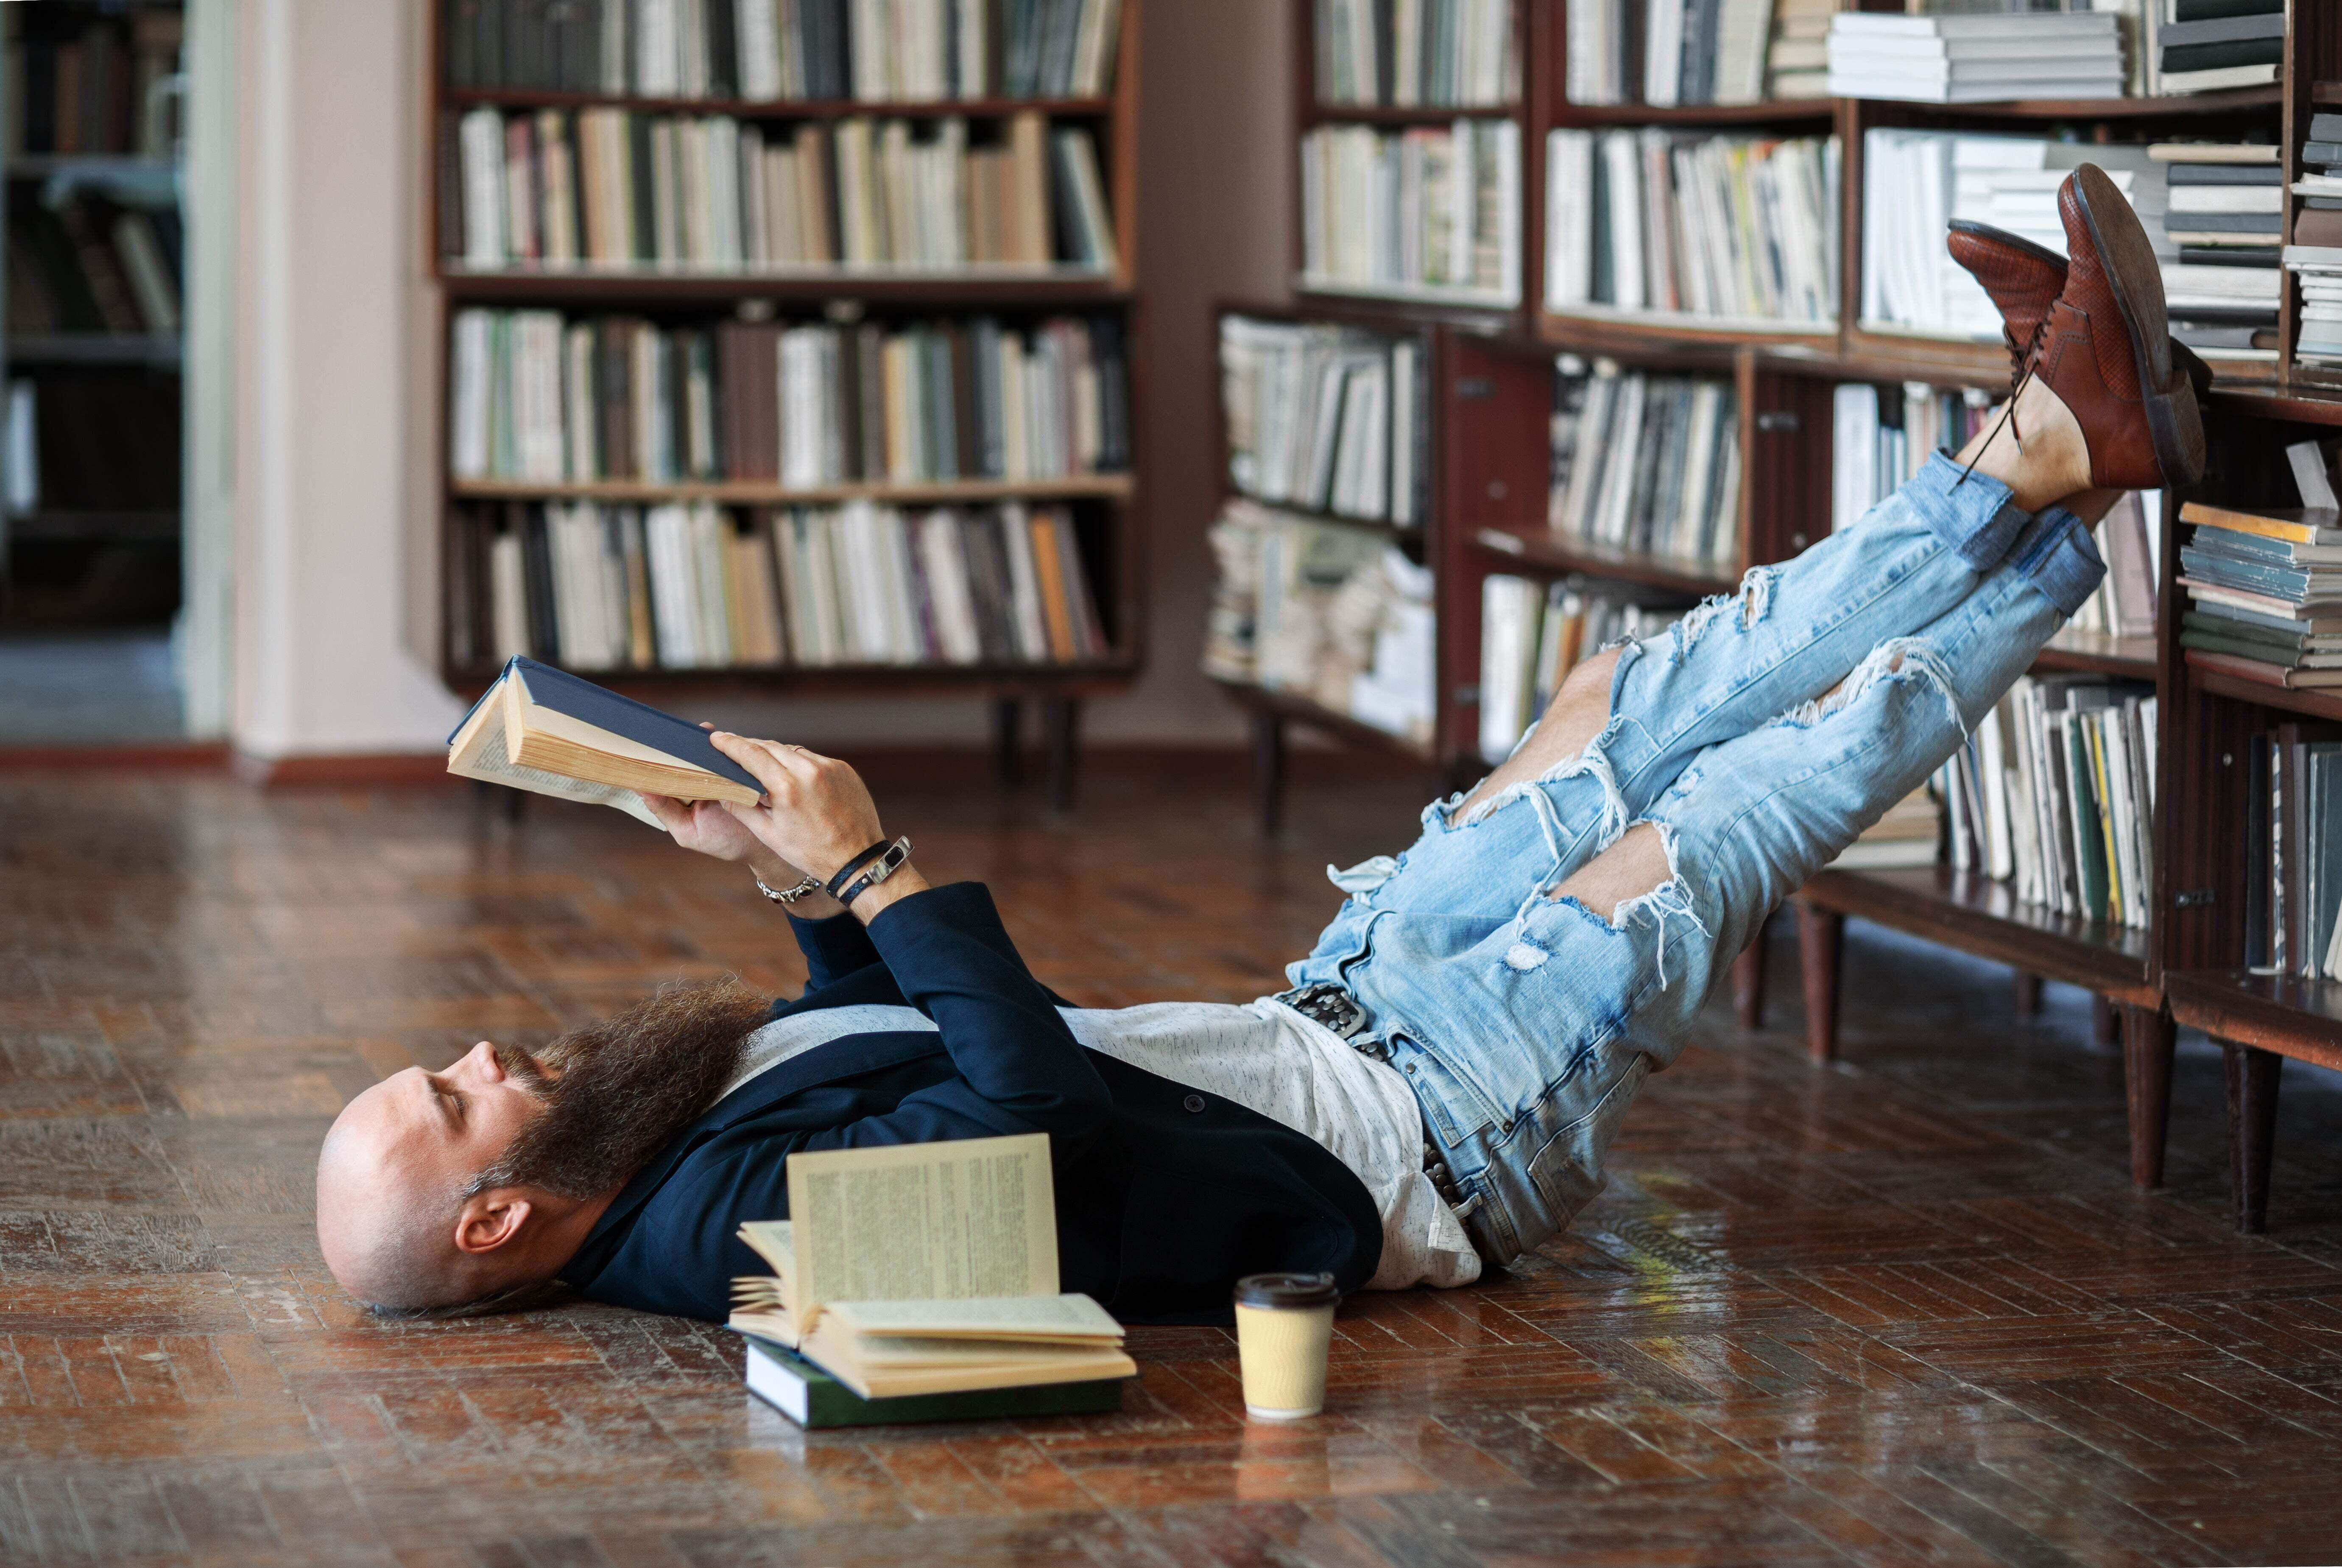 A man reading a book while propping his feet on a bookshelf